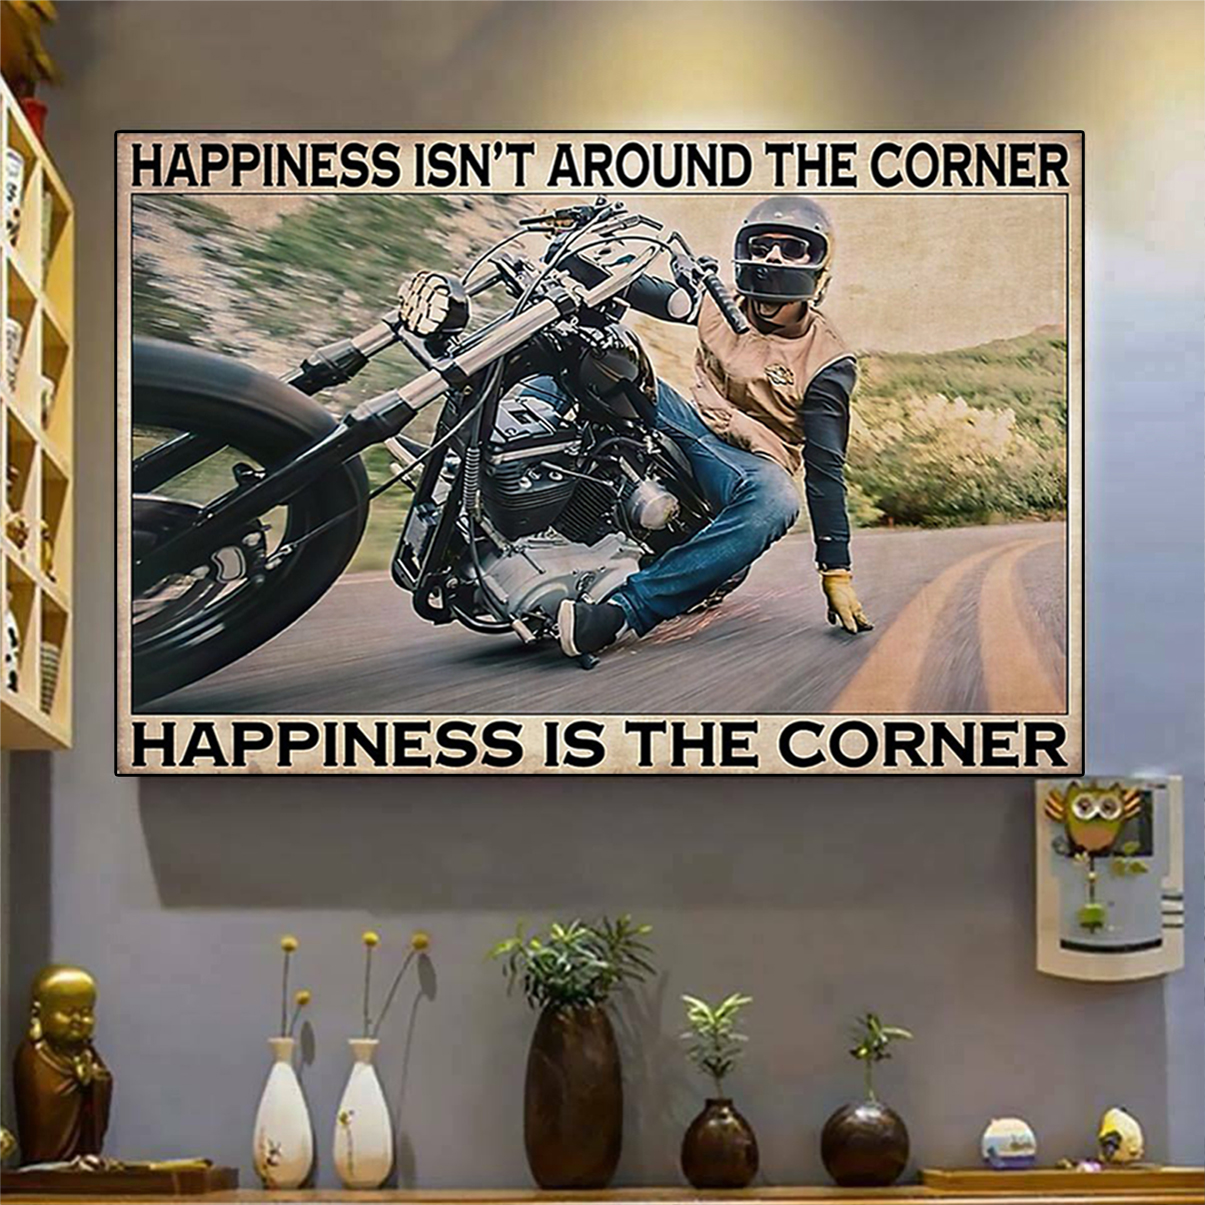 Motorcycle corner hapiness isn't around the corner poster A3